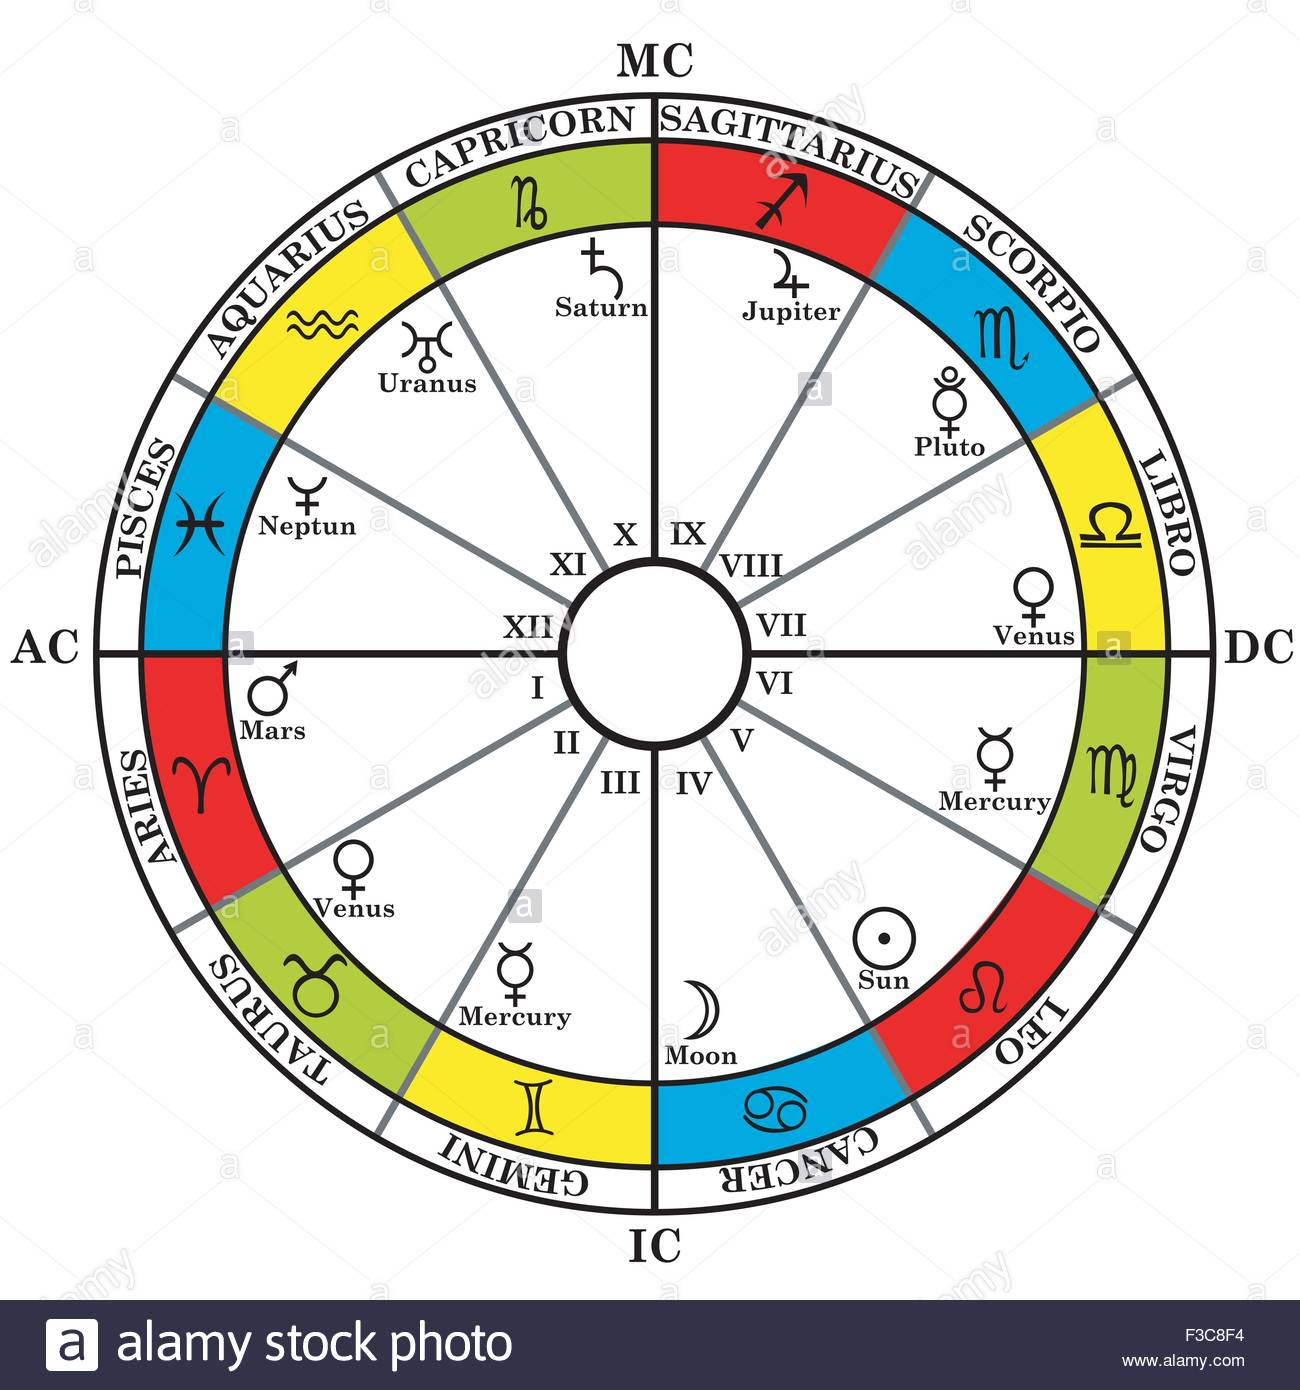 Astrology zodiac with natal chart zodiac signs houses and planets